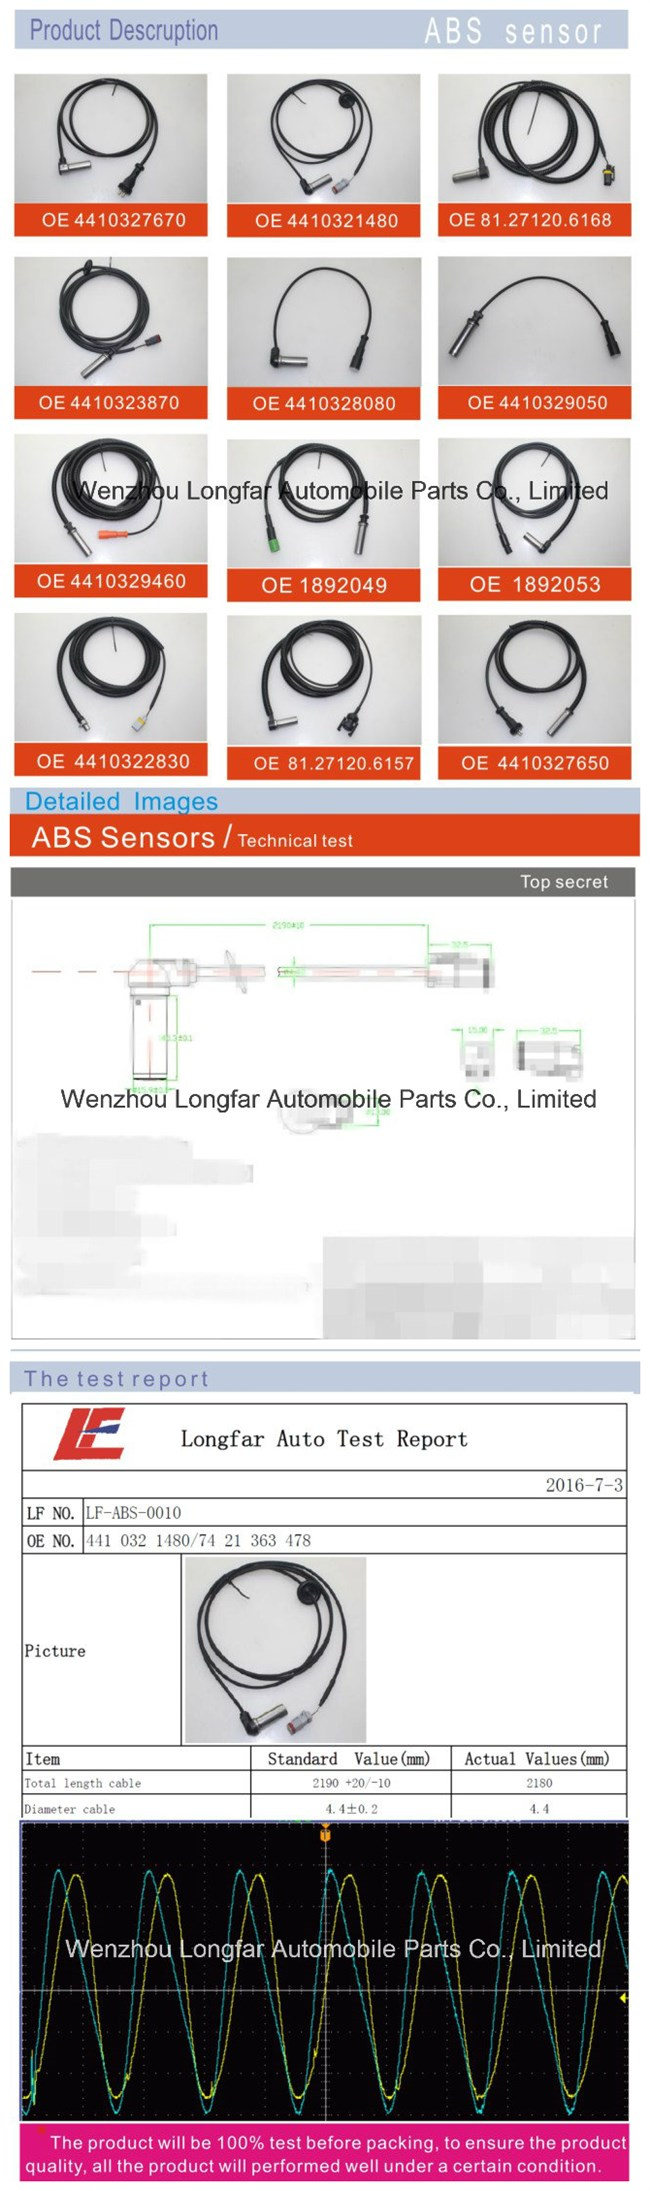 ABS Sensor Anti-Lock Braking System Sensor Transducer Indicator 4410321480 5010457882 7421363478 21363478 74 21 363 478 for Mercedes-Benz Daf Iveco Scania Truck